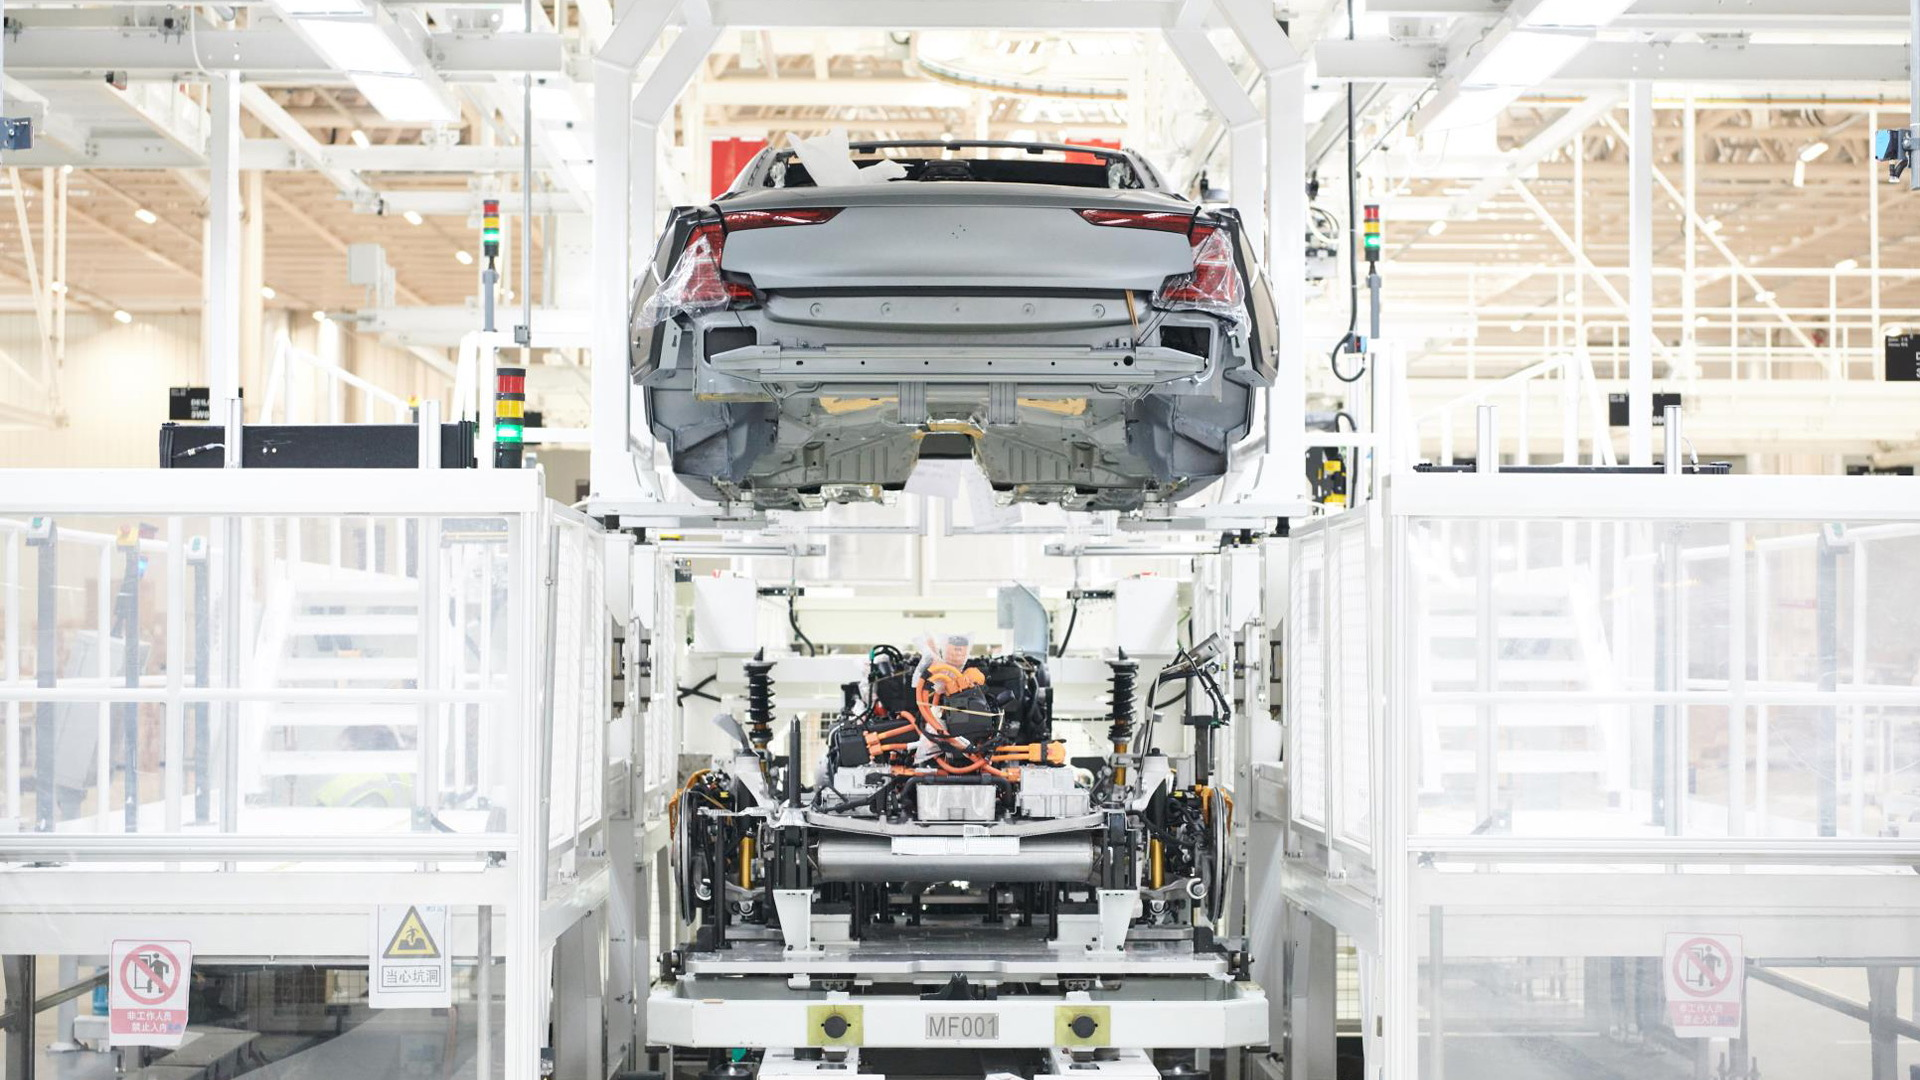 Polestar 1 production at plant in Chengdu, China